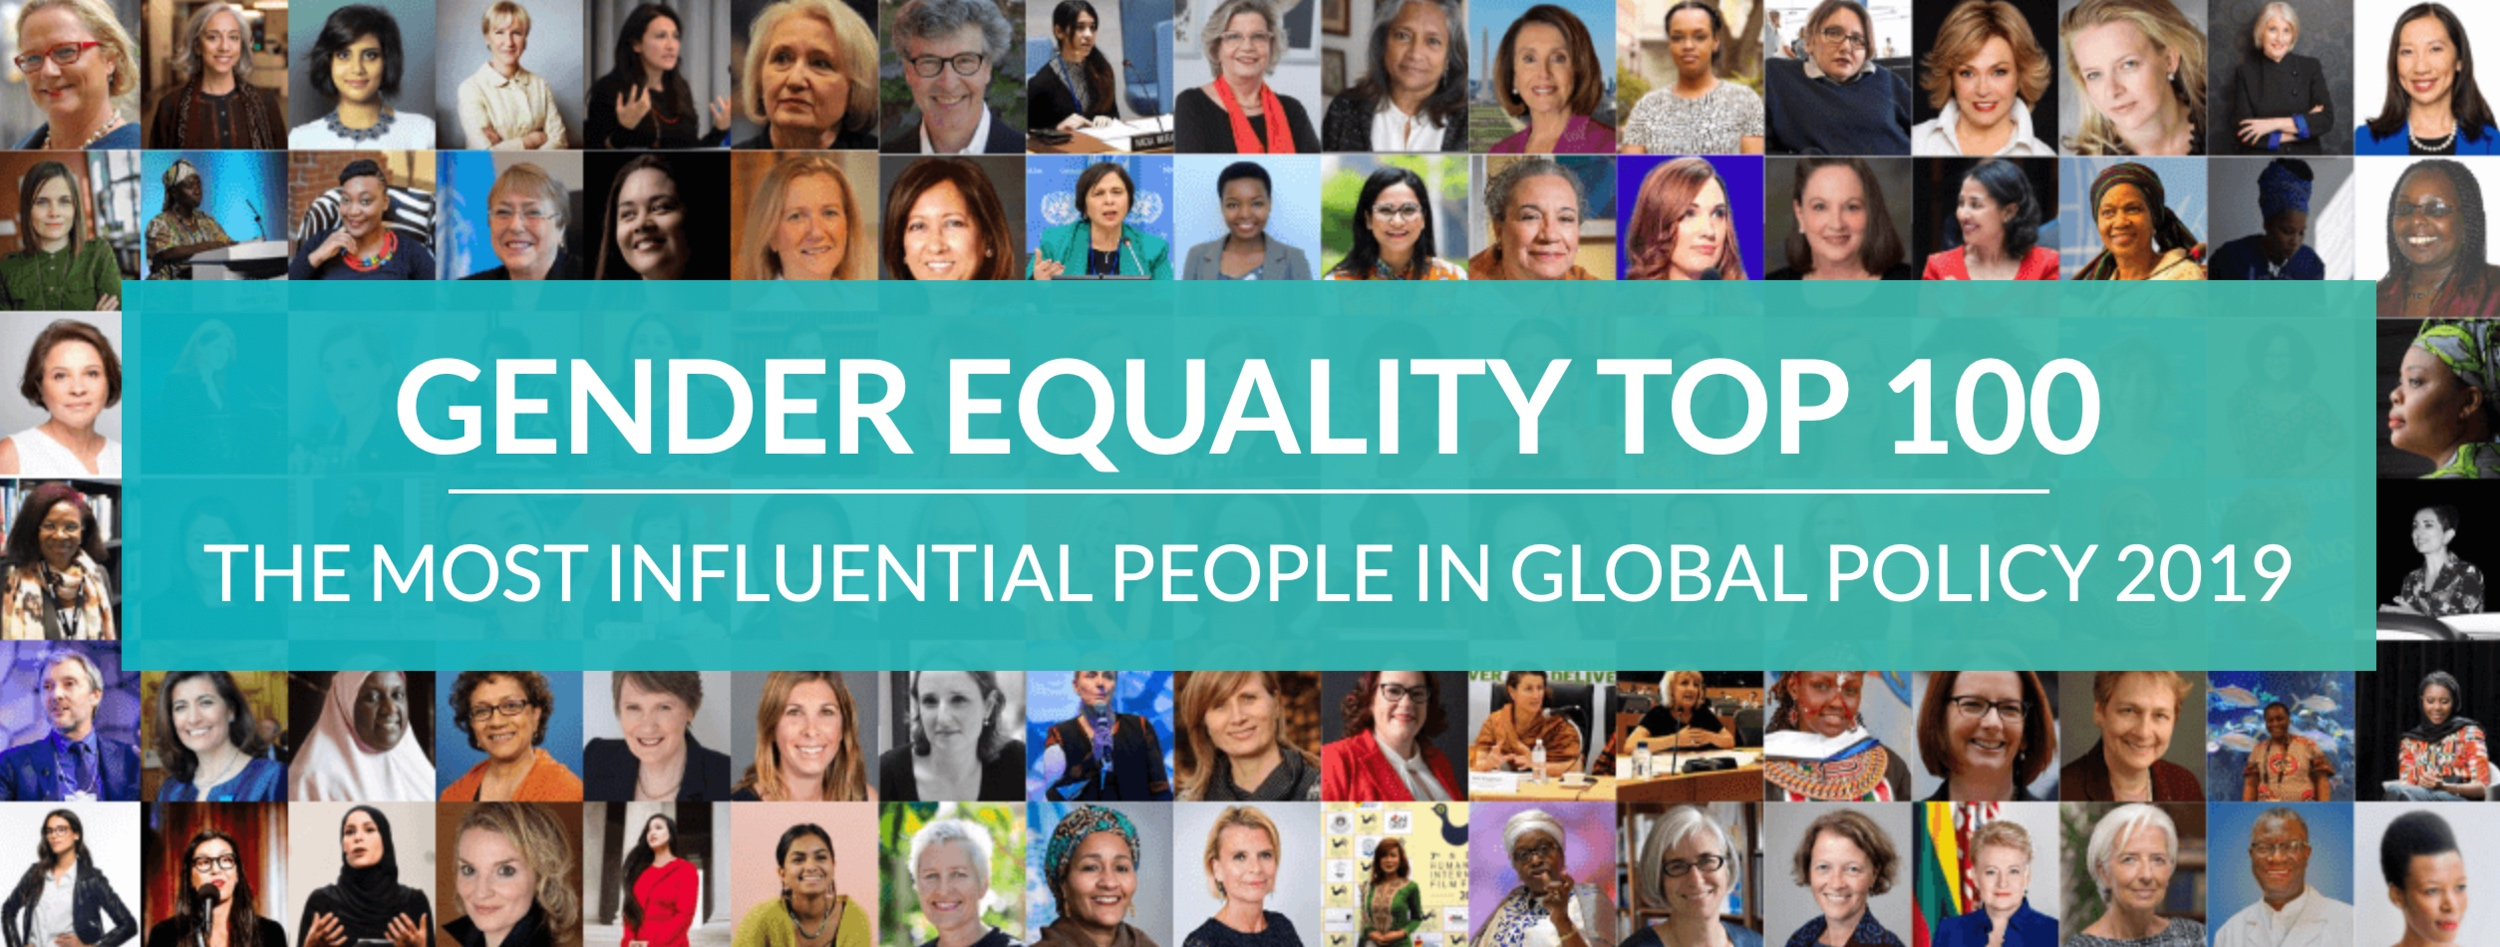 CONGRATS TO DR. KAUFMAN ON BEING NAMED TO APOLITICAL'S GENDER EQUALITY TOP 100 LIST (Click image above for details)